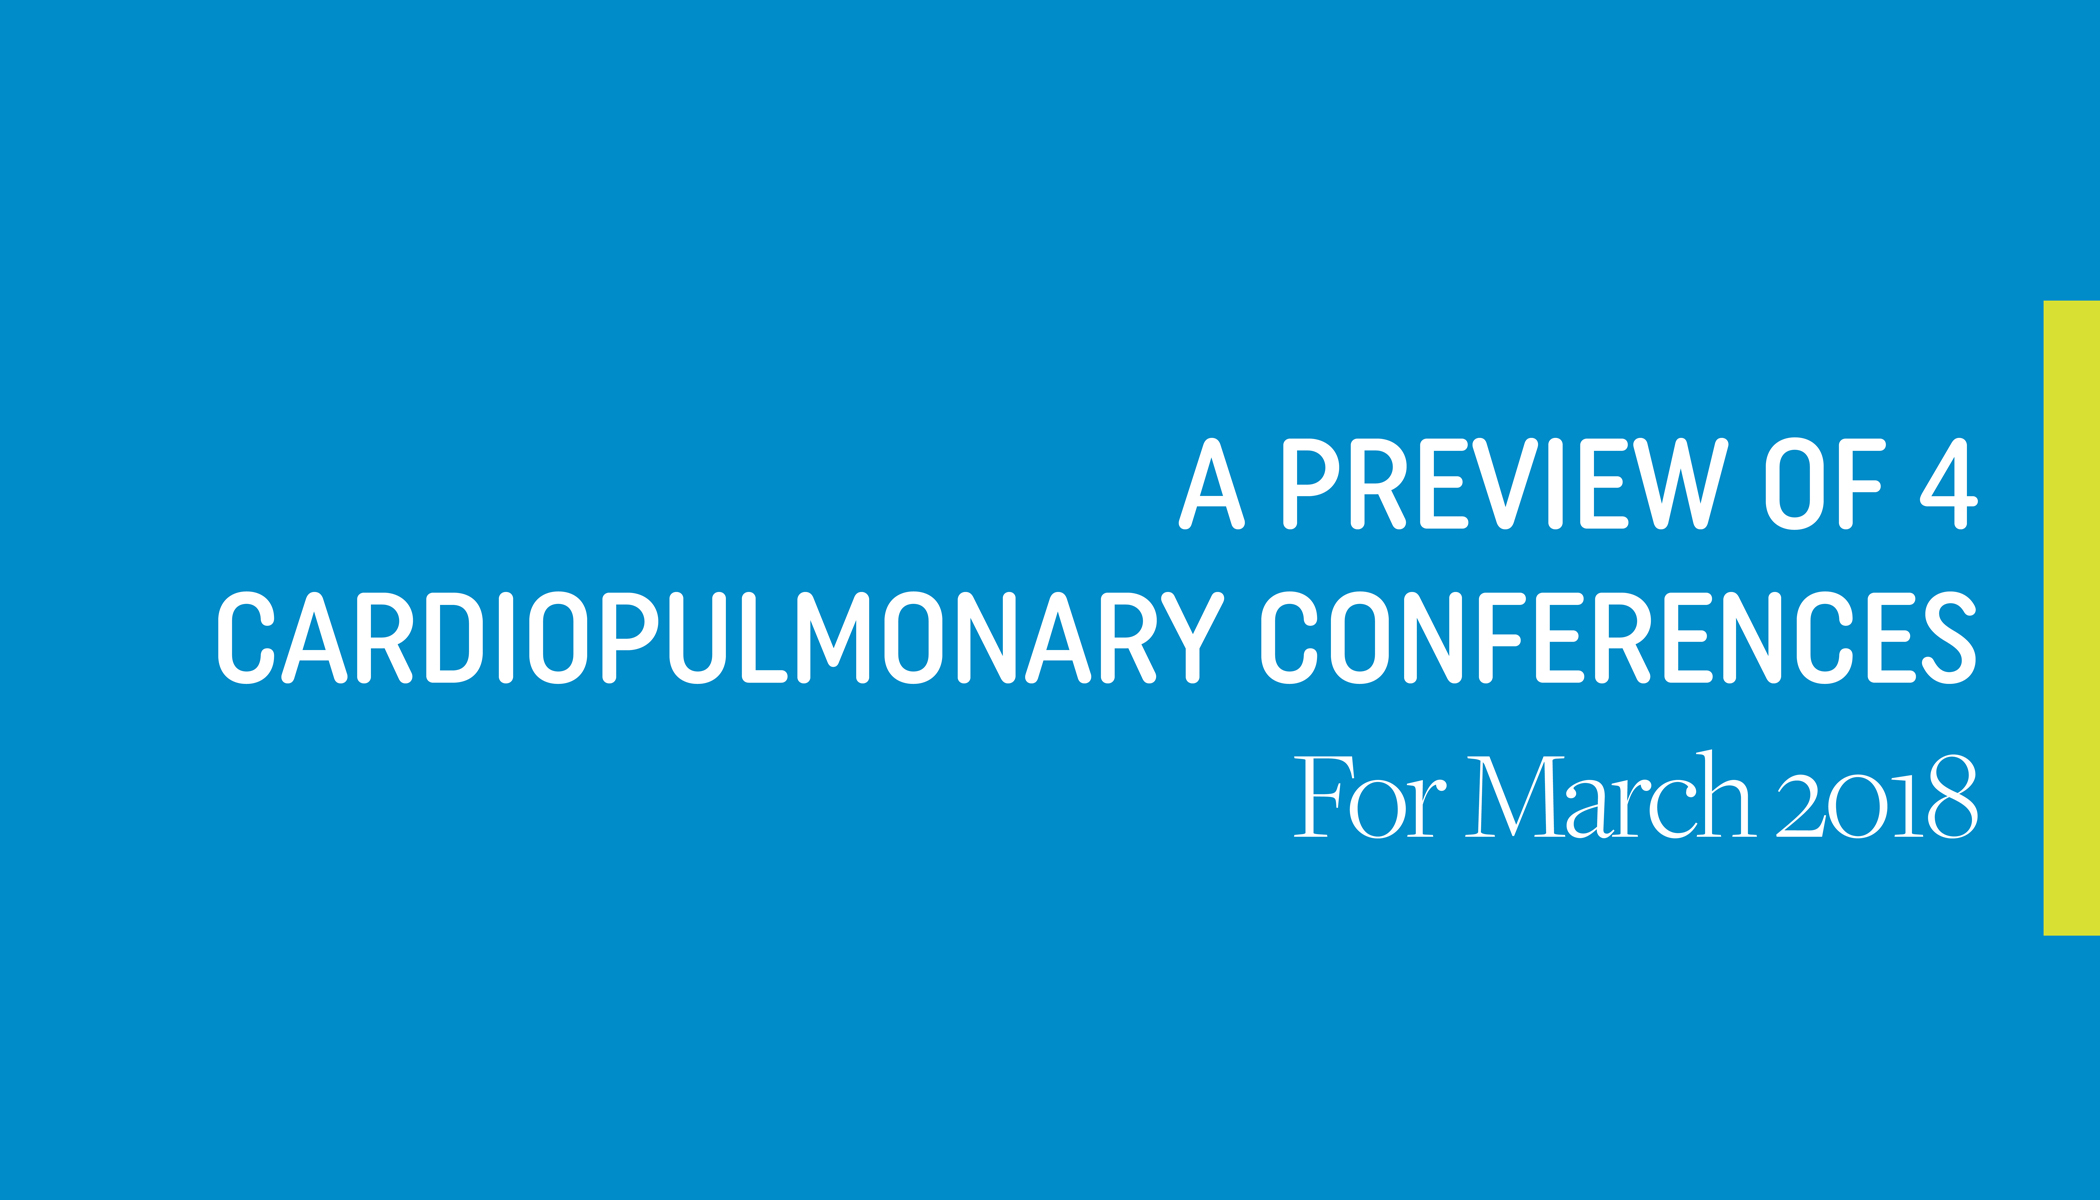 4 Cardiac and Pulmonary Conferences in March